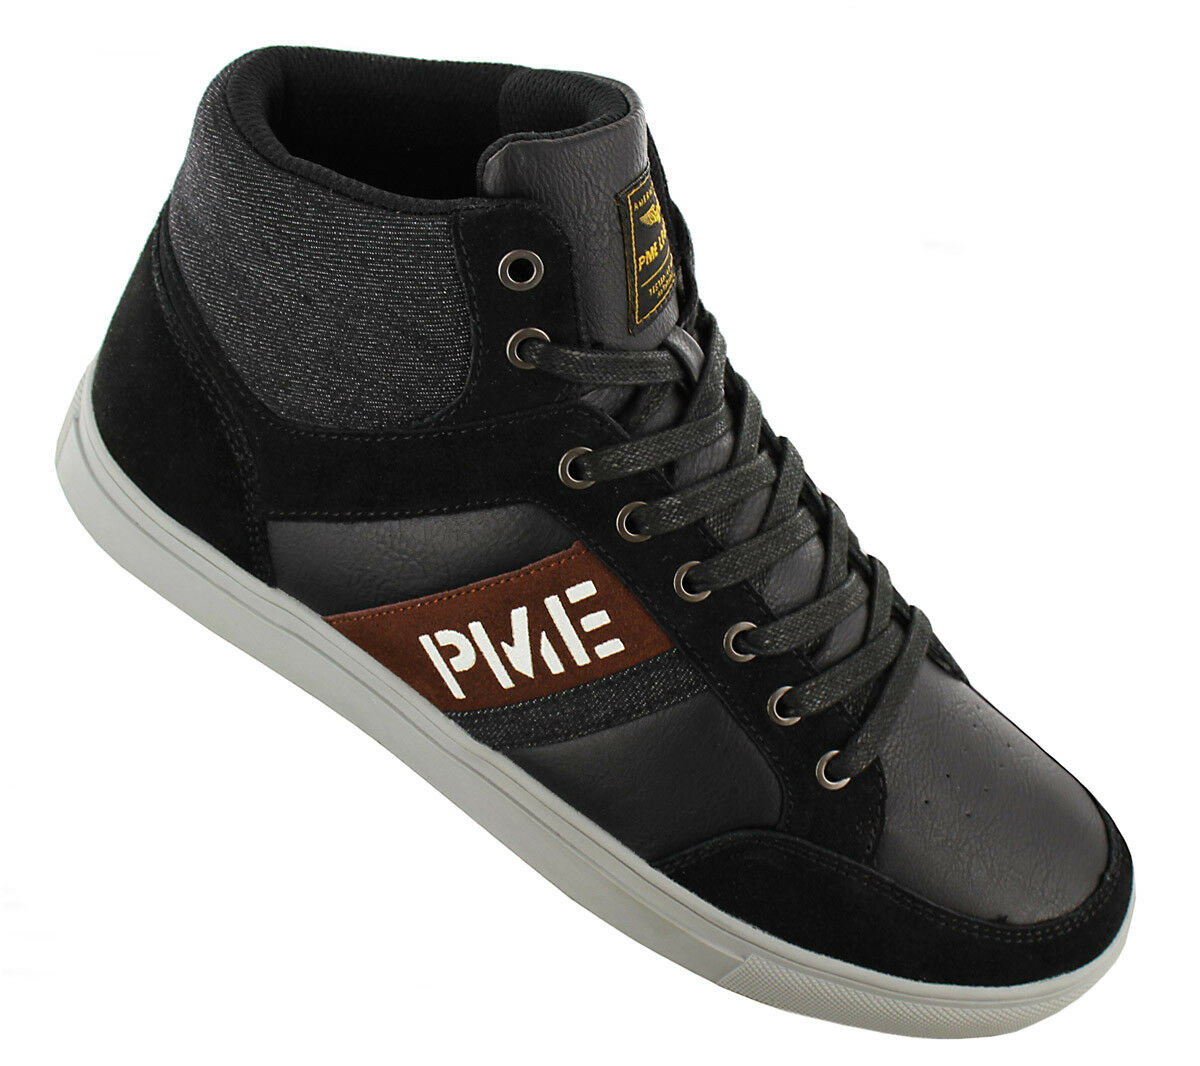 NEW PME Legend Frame Mid Leather PBO186023-999 Men''s shoes Trainers Sneakers SA